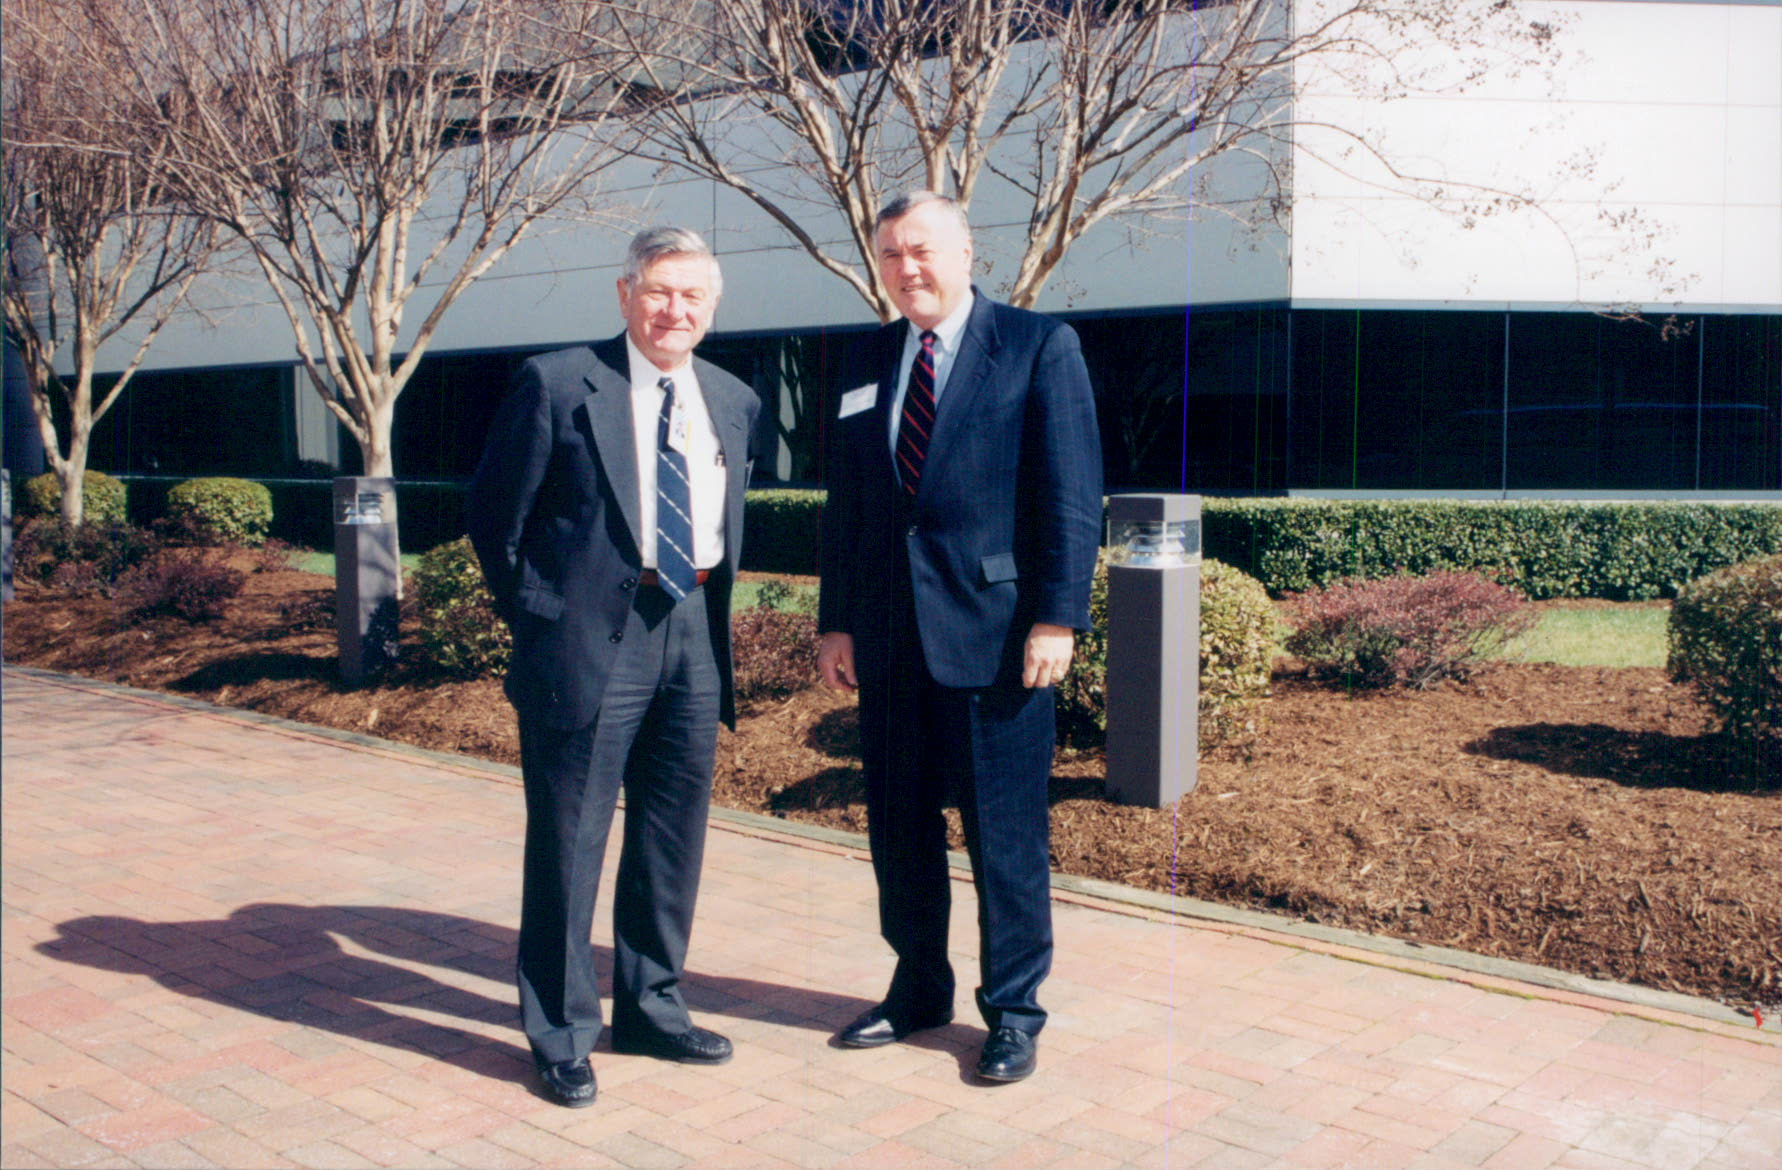 Director Hermann Grunder (l) with General Eugene Habiger, DOE Director of Security and Emergency Operations, March 3, 2000.